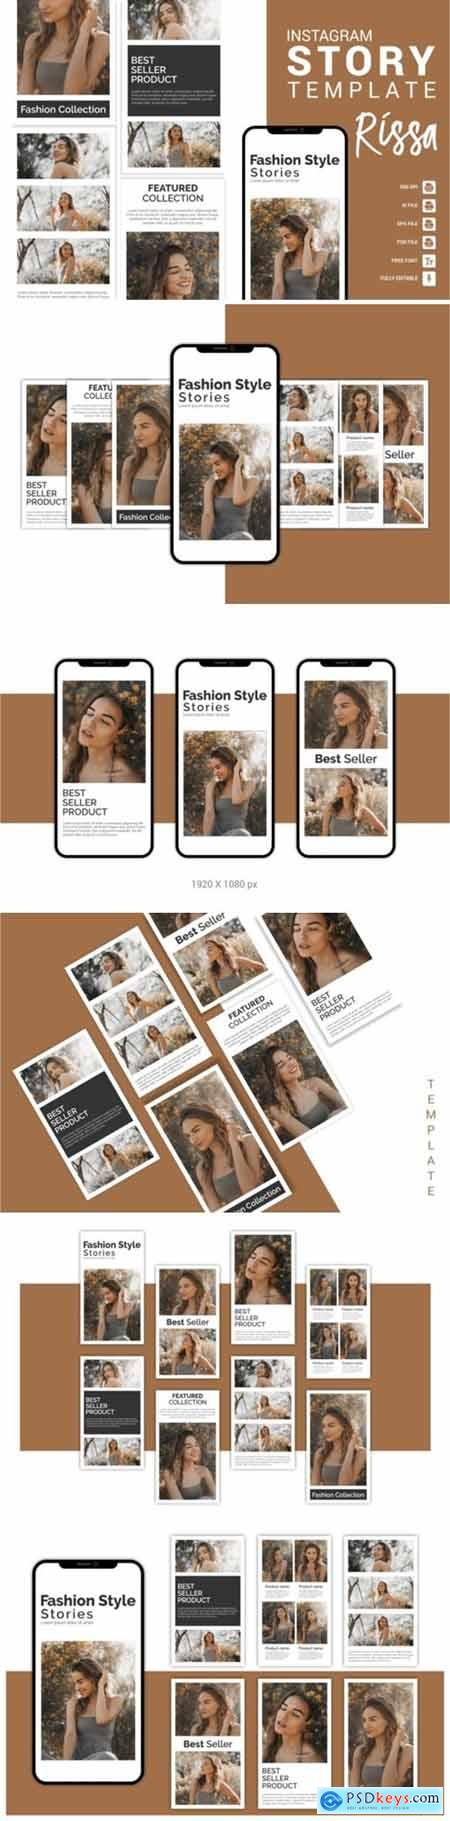 Rissa - Fashion Instagram Story Template 3656096